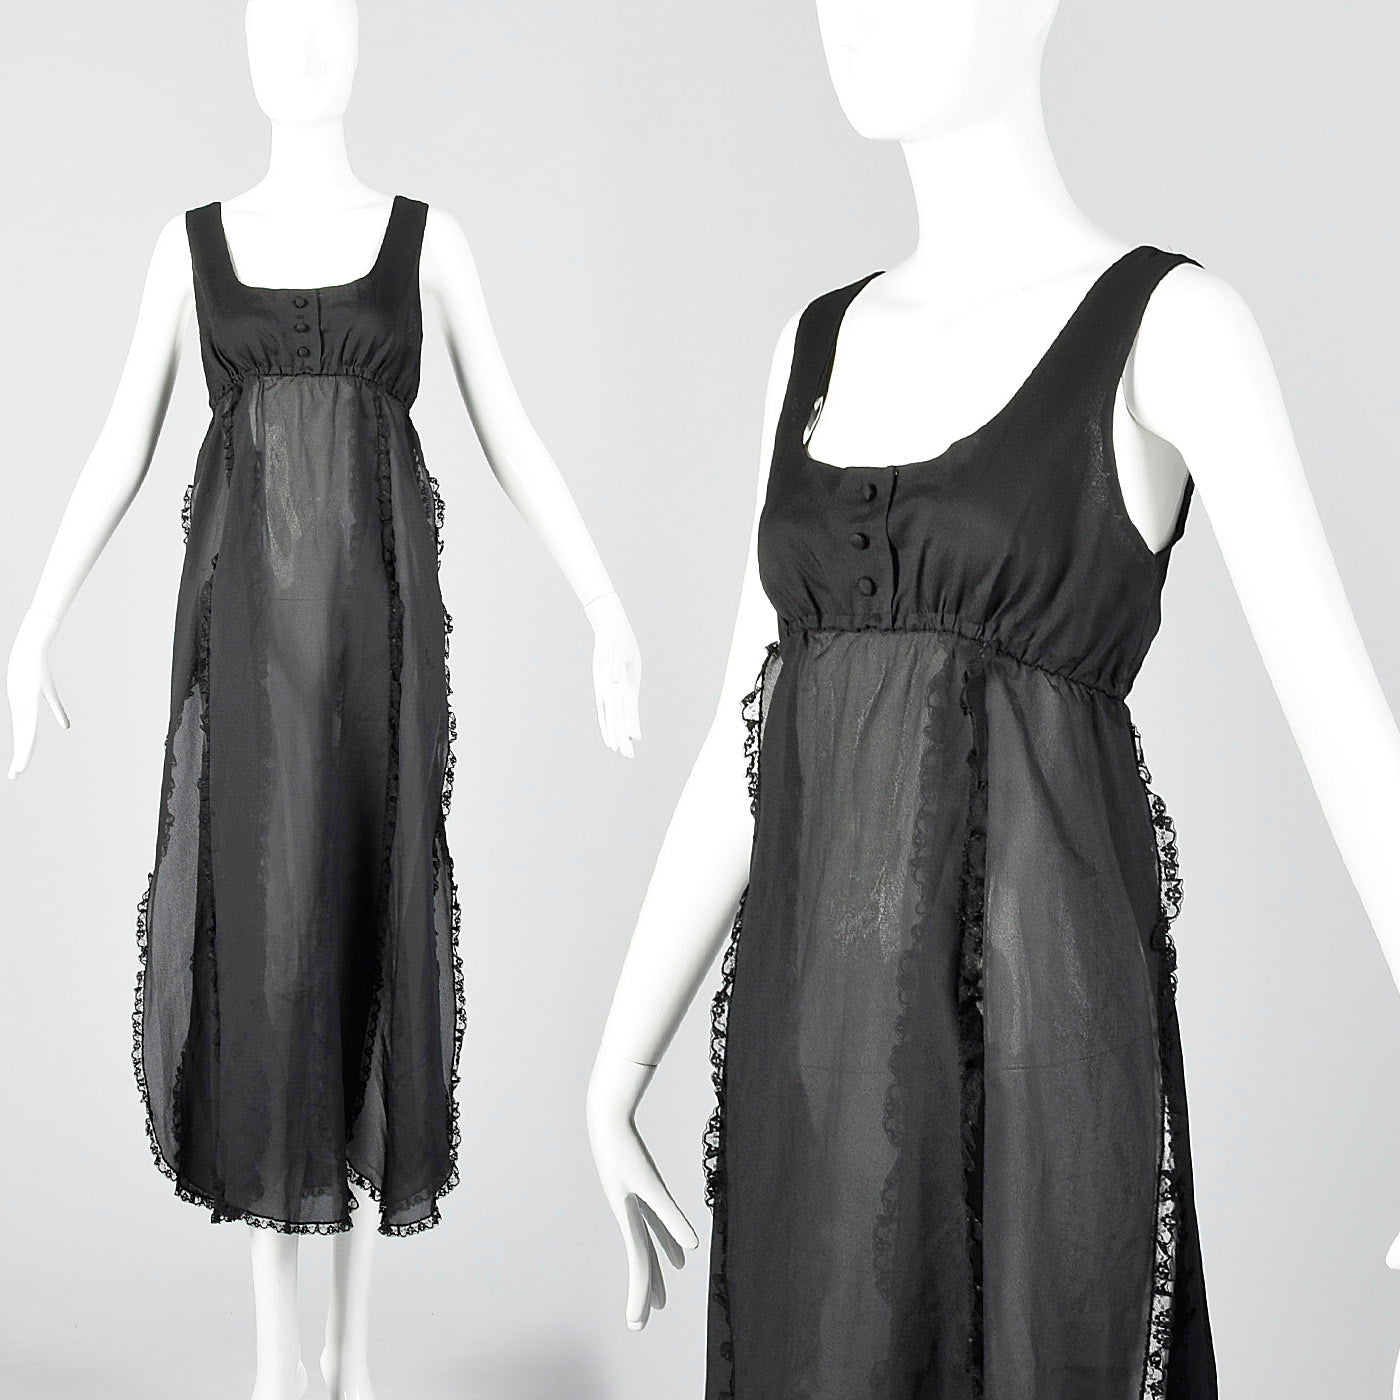 1970s Saks Fifth Avenue Sheer Black Nightgown with Car Wash Hem